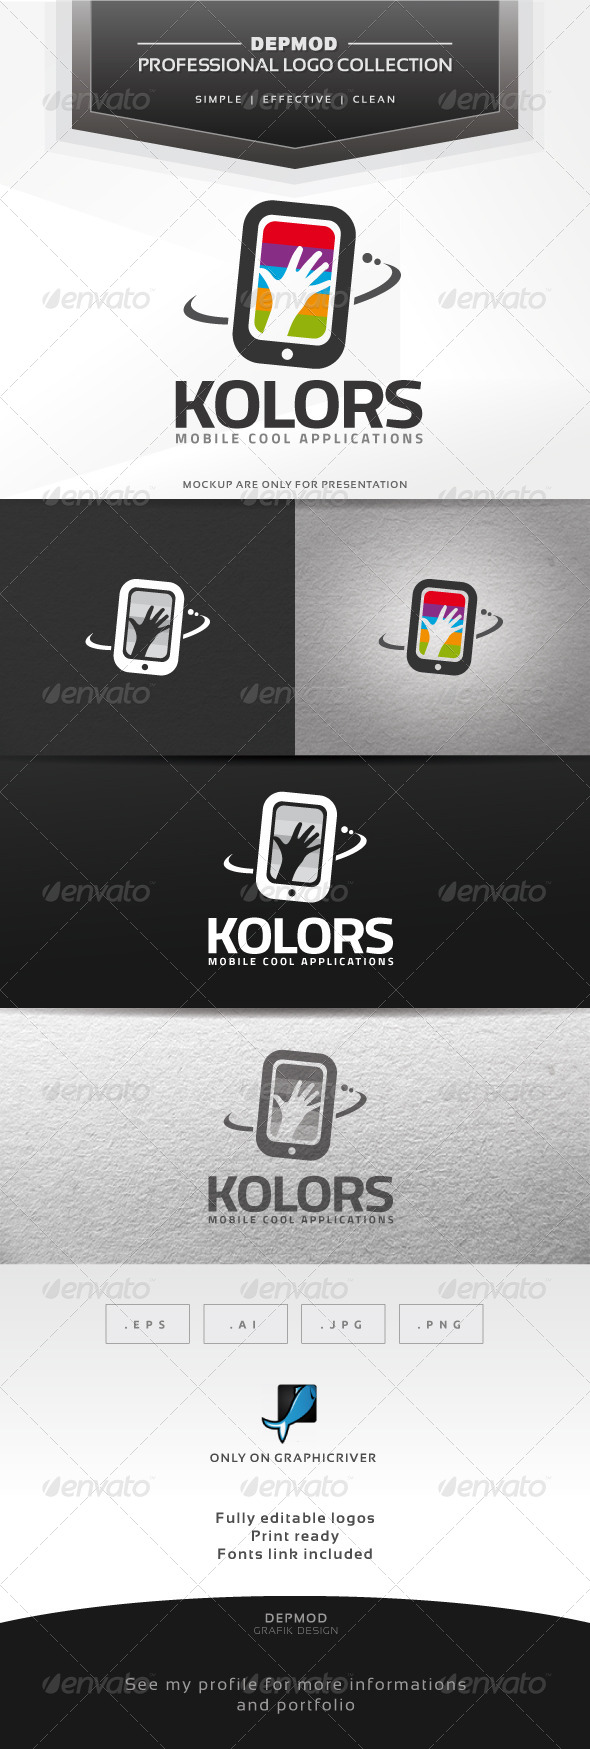 GraphicRiver Kolors Logo 6363119